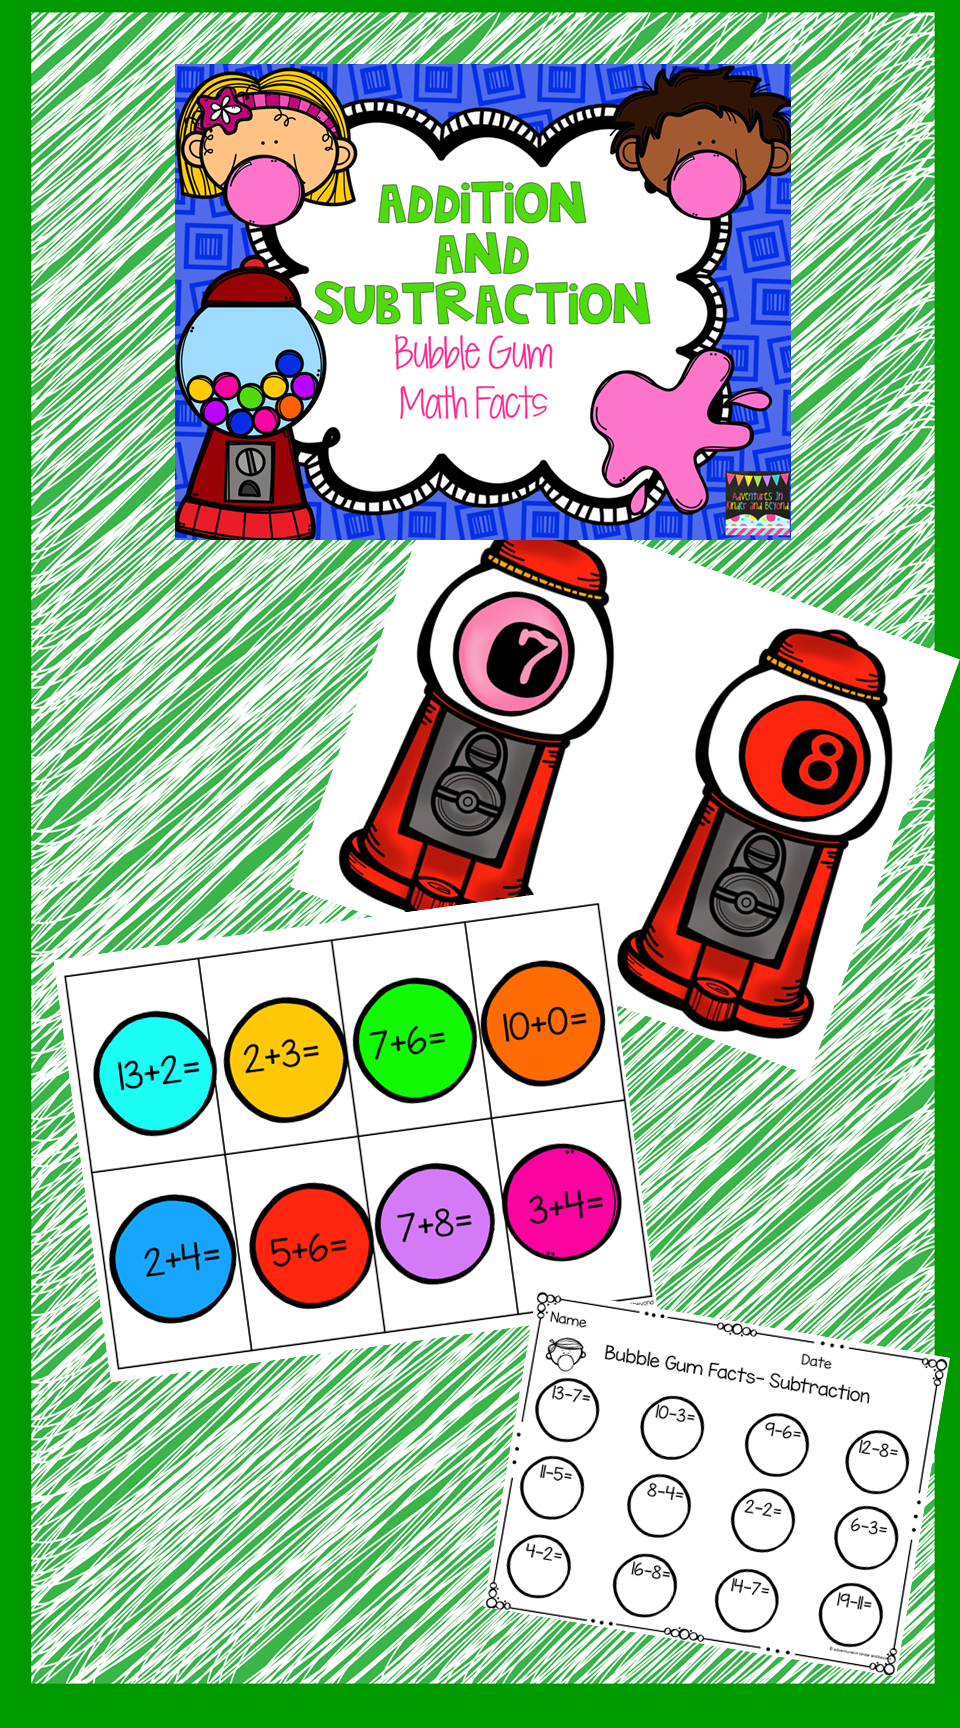 Looking For A Fun Way For Your Students To Practice Their Addition And Subtraction Skills Bubble Gum Math Is T Math Facts Subtraction Addition And Subtraction [ 1728 x 960 Pixel ]